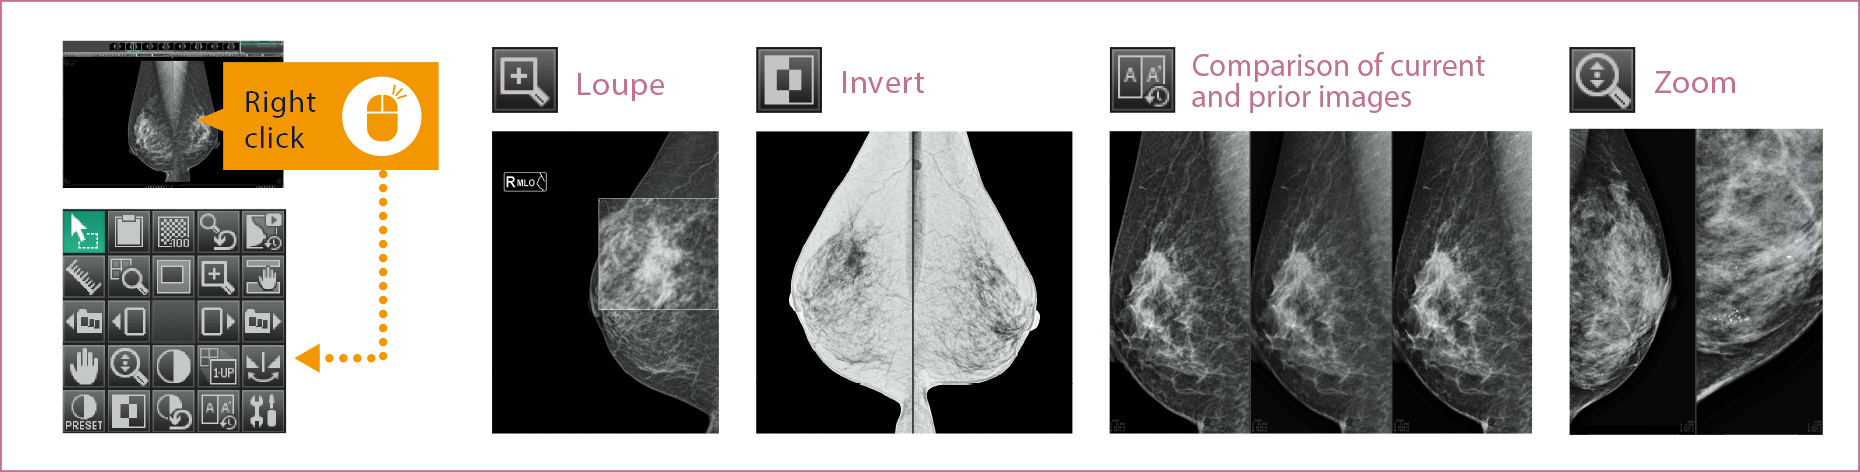 [image] Loupe, Invert, Comparison of current and prior images and Zoom X-rays